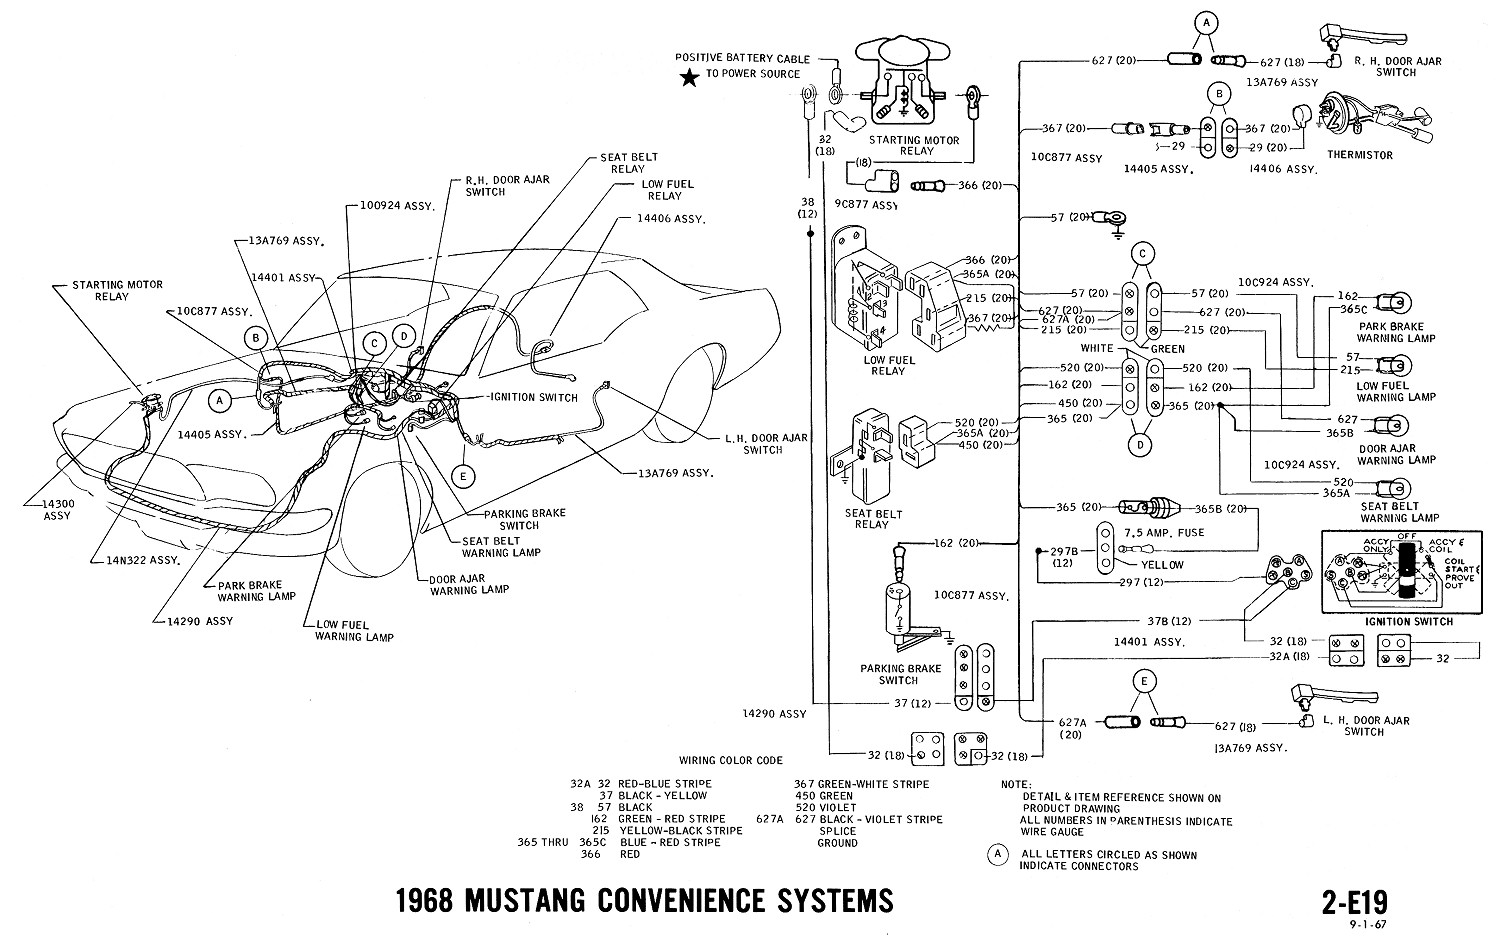 Wiring Schematic For 1970 Firebird 67 Cougar Harness Manual Guide Diagram Trusted Diagrams U2022 Rh Inspiralni Co 68 Mustang Fastback